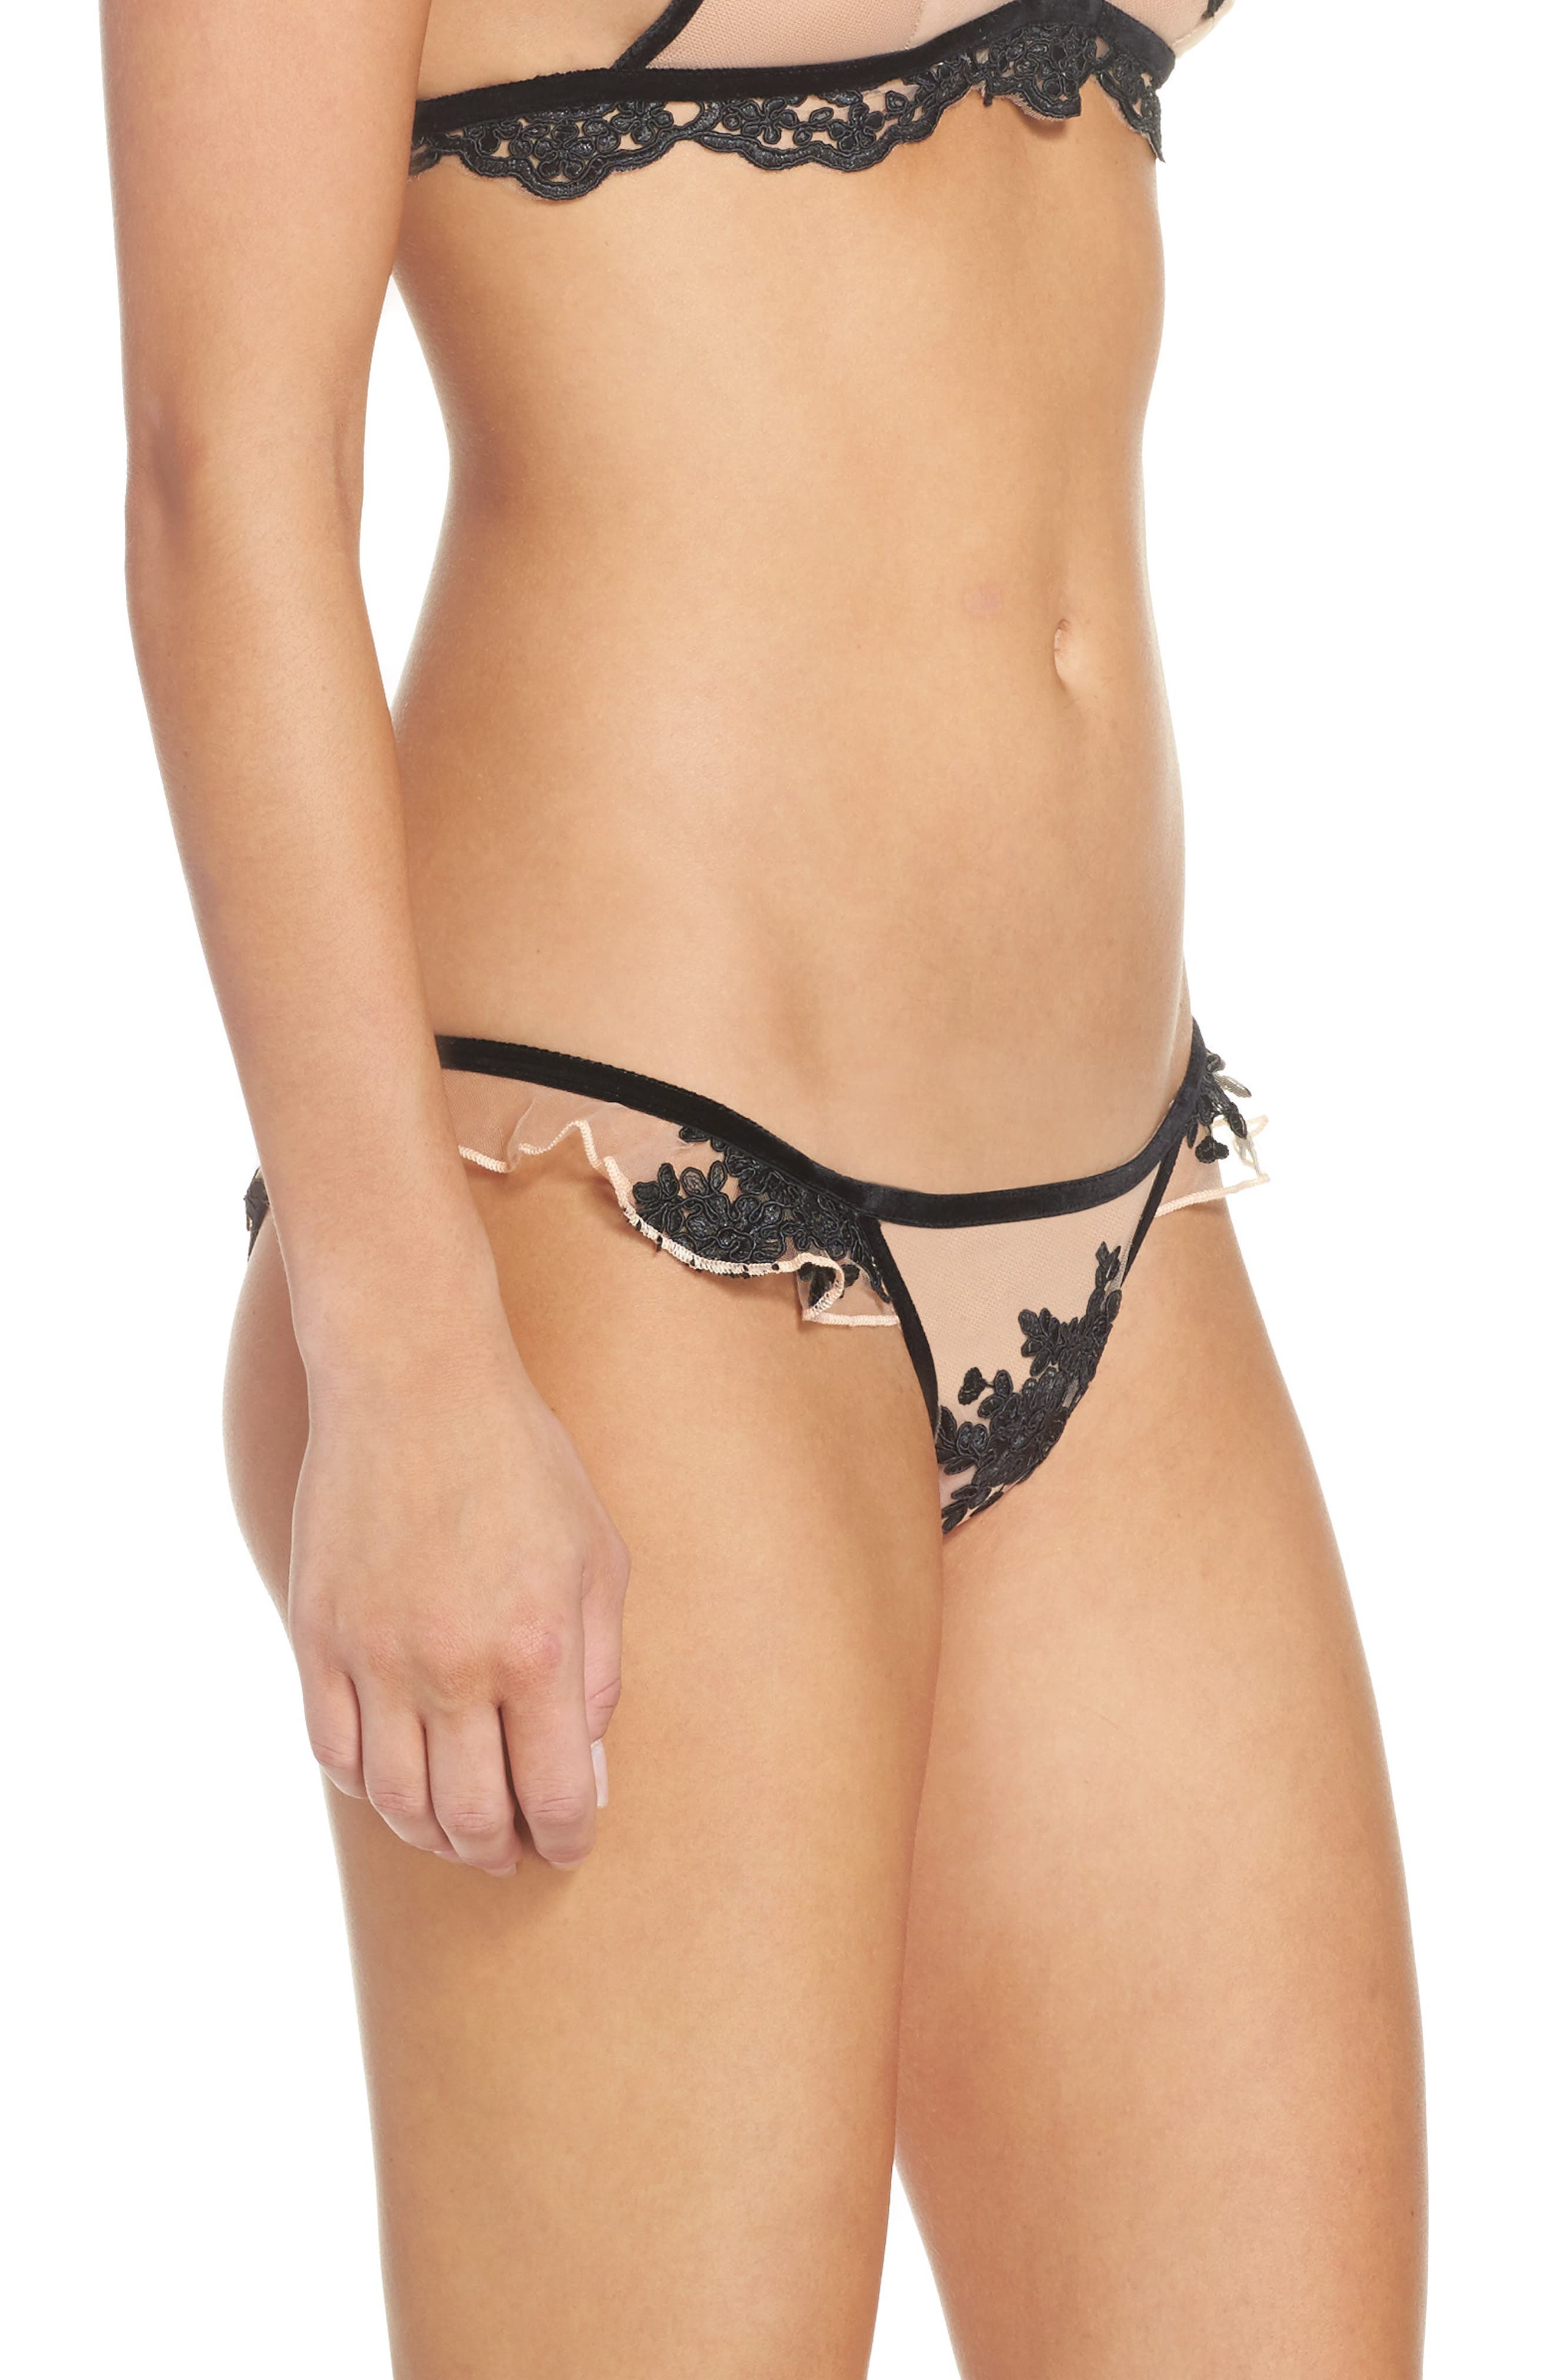 Noemi Ruffle Panties,                             Alternate thumbnail 3, color,                             001